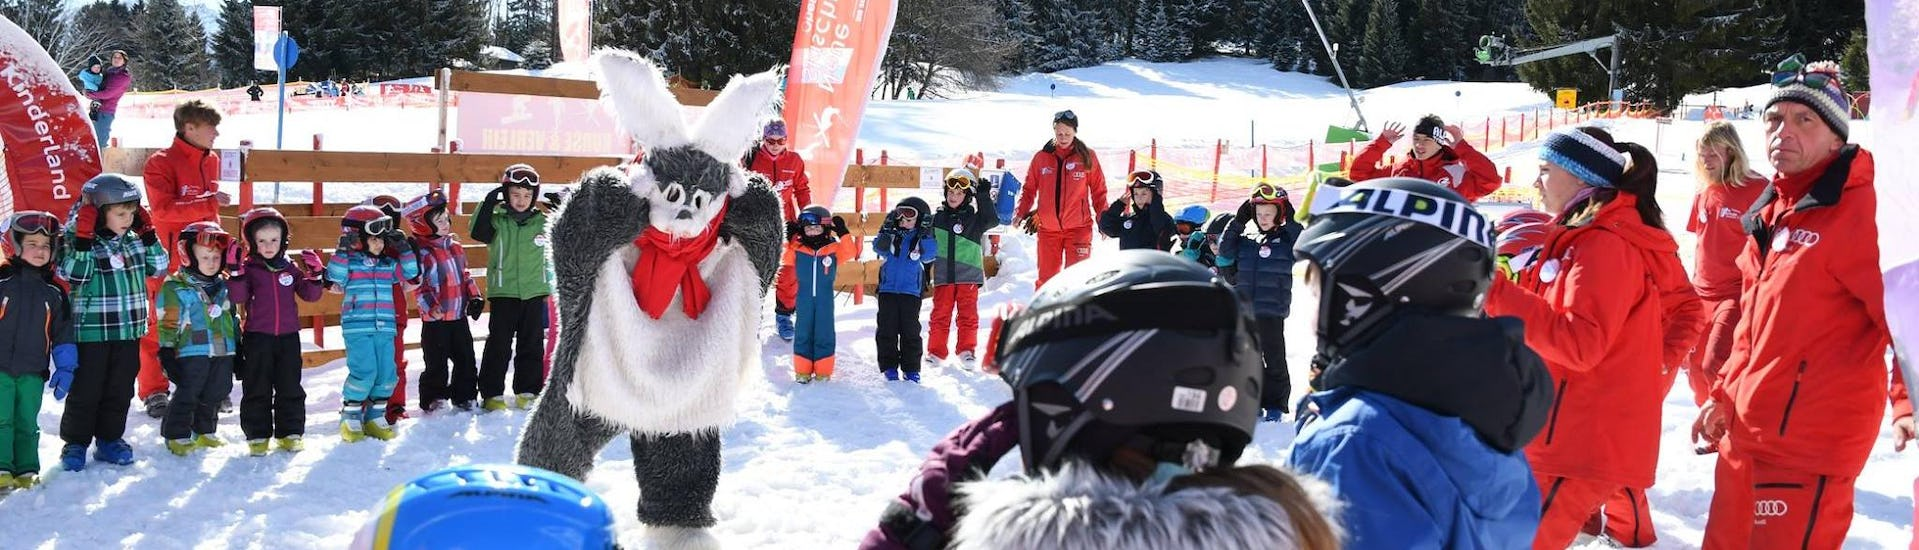 Children are having fun with bunny Hasi during the Private Ski Lessons for Kids - All Levels in the ski school Neue Skischule Oberstdorf.